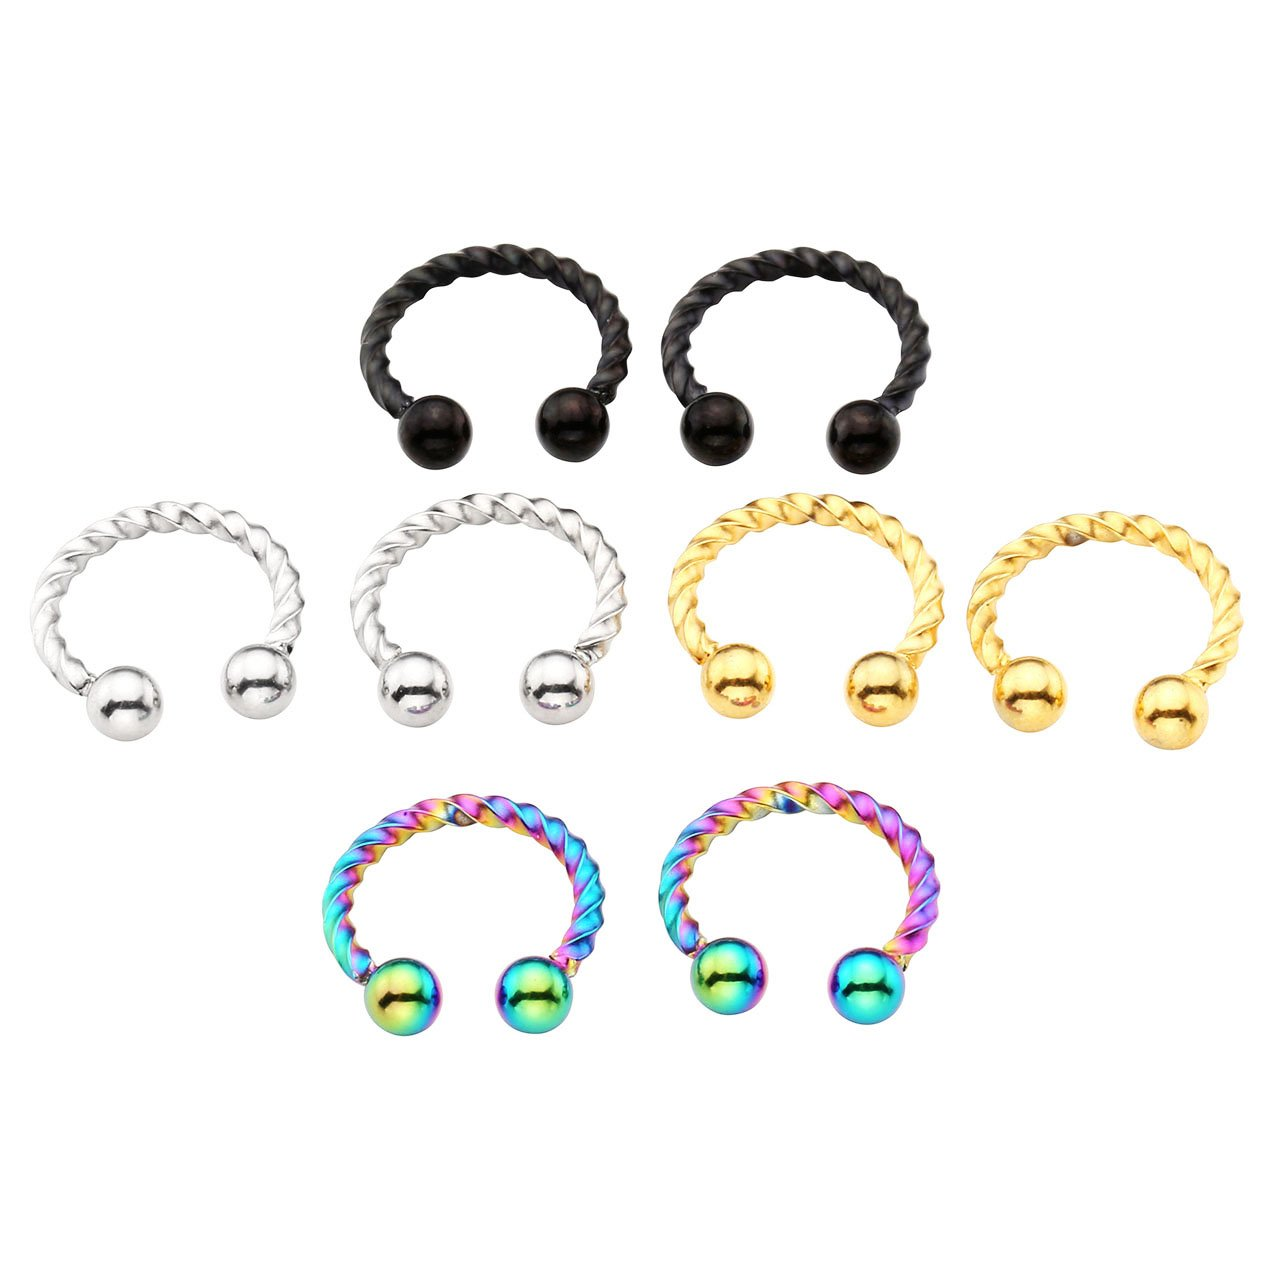 PiercingJ 2-8pcs Stainless Steel Clip On Fake Piercings Unscrew Ear Nose Cartilage Septum Rings Body Jewelry CBR Horseshoe